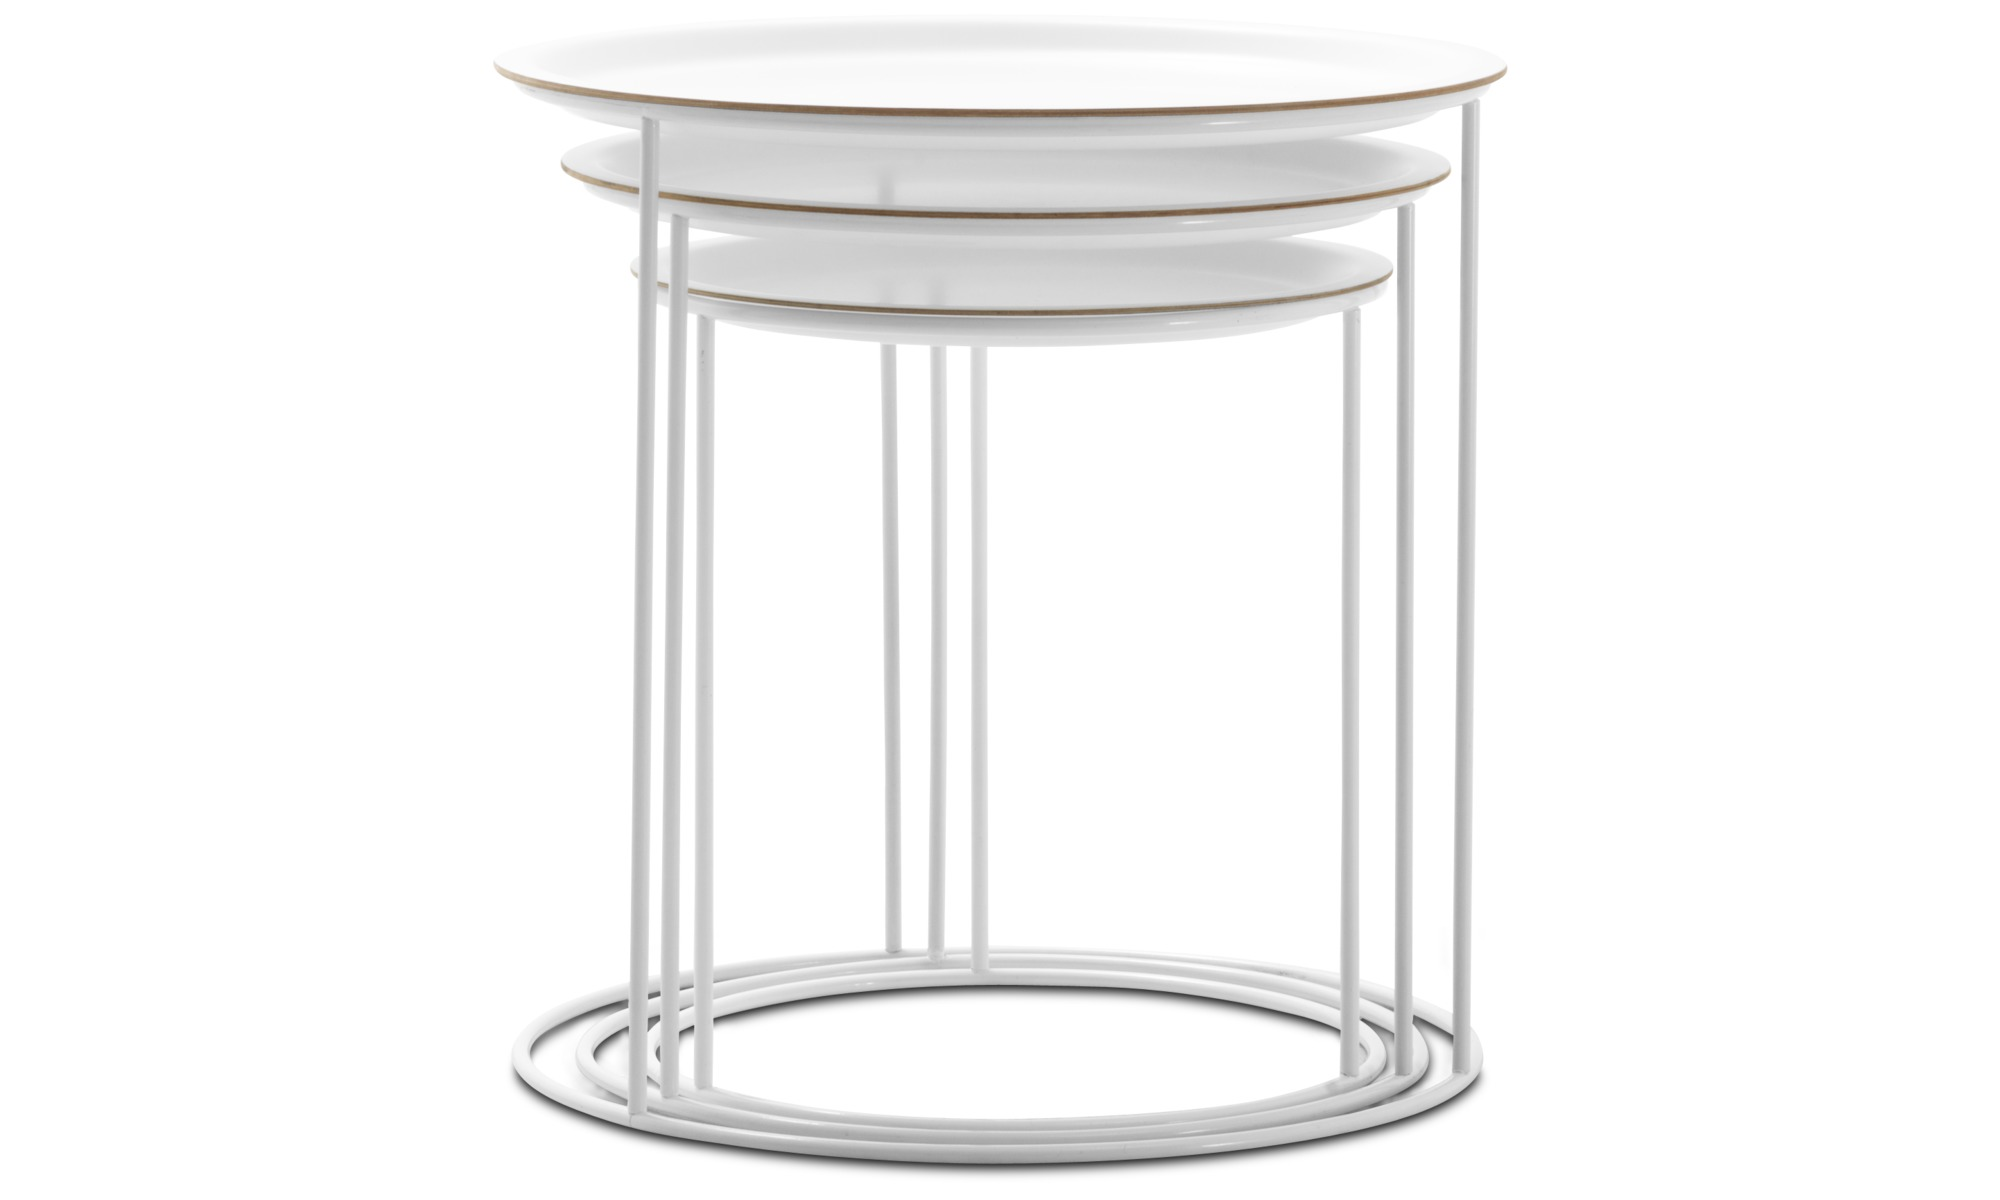 ... Coffee Tables   Cartagena Nesting Tables   Round   White   Lacquered